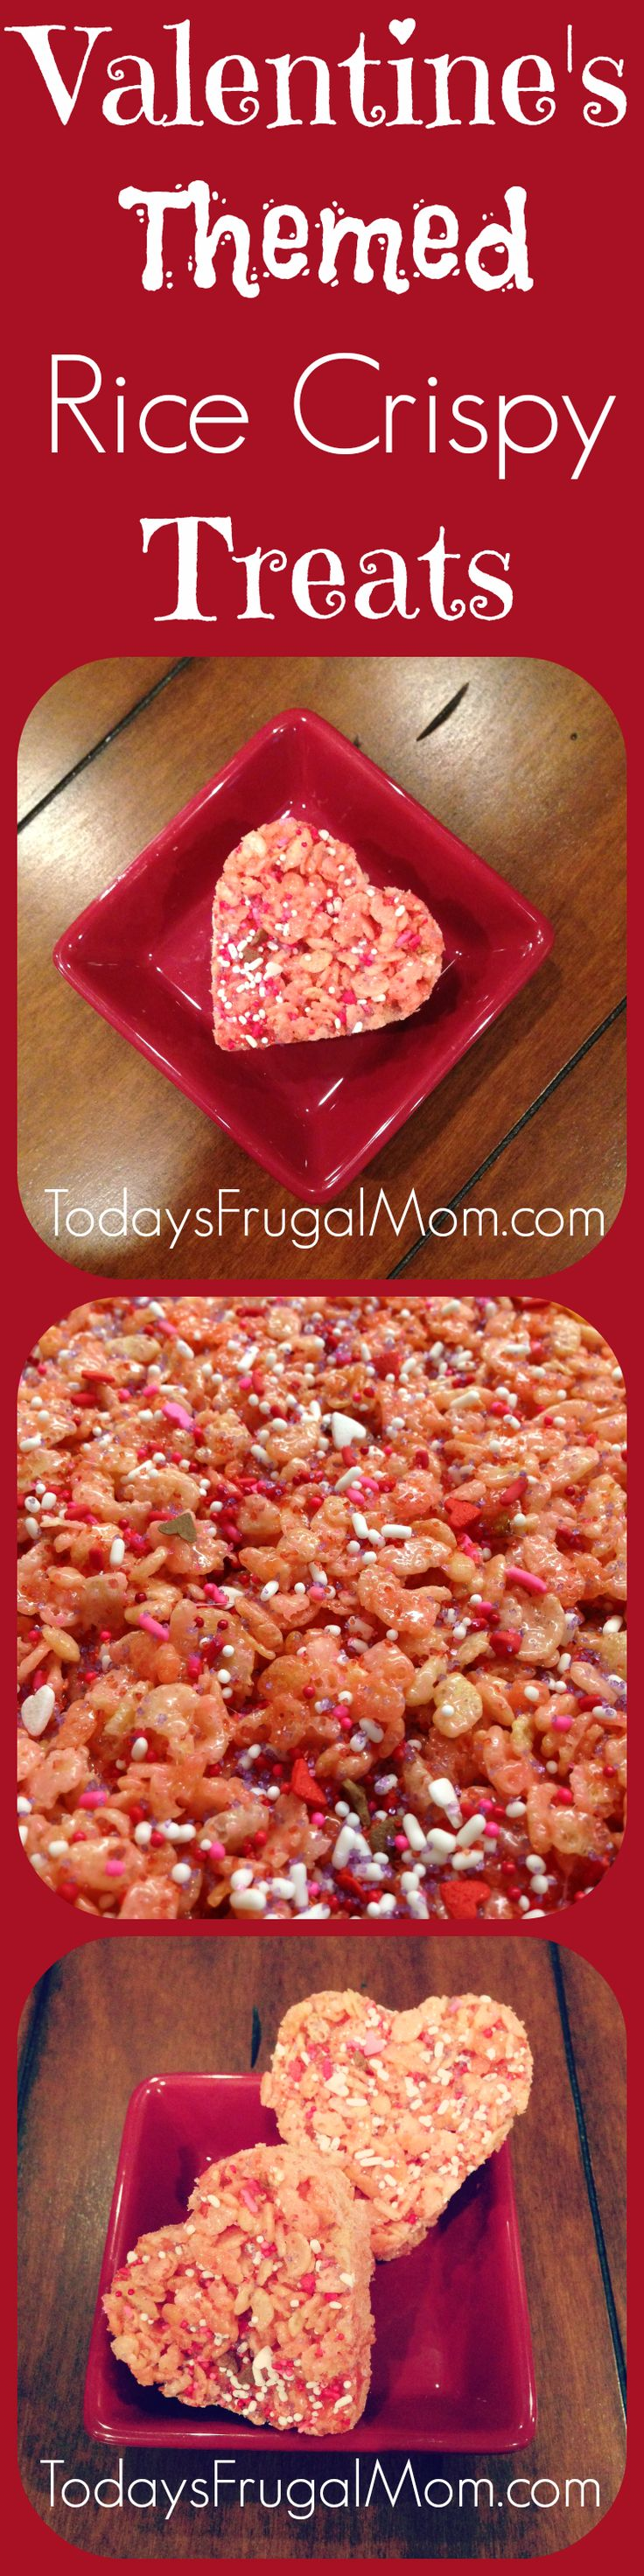 valentine's day rice recipes